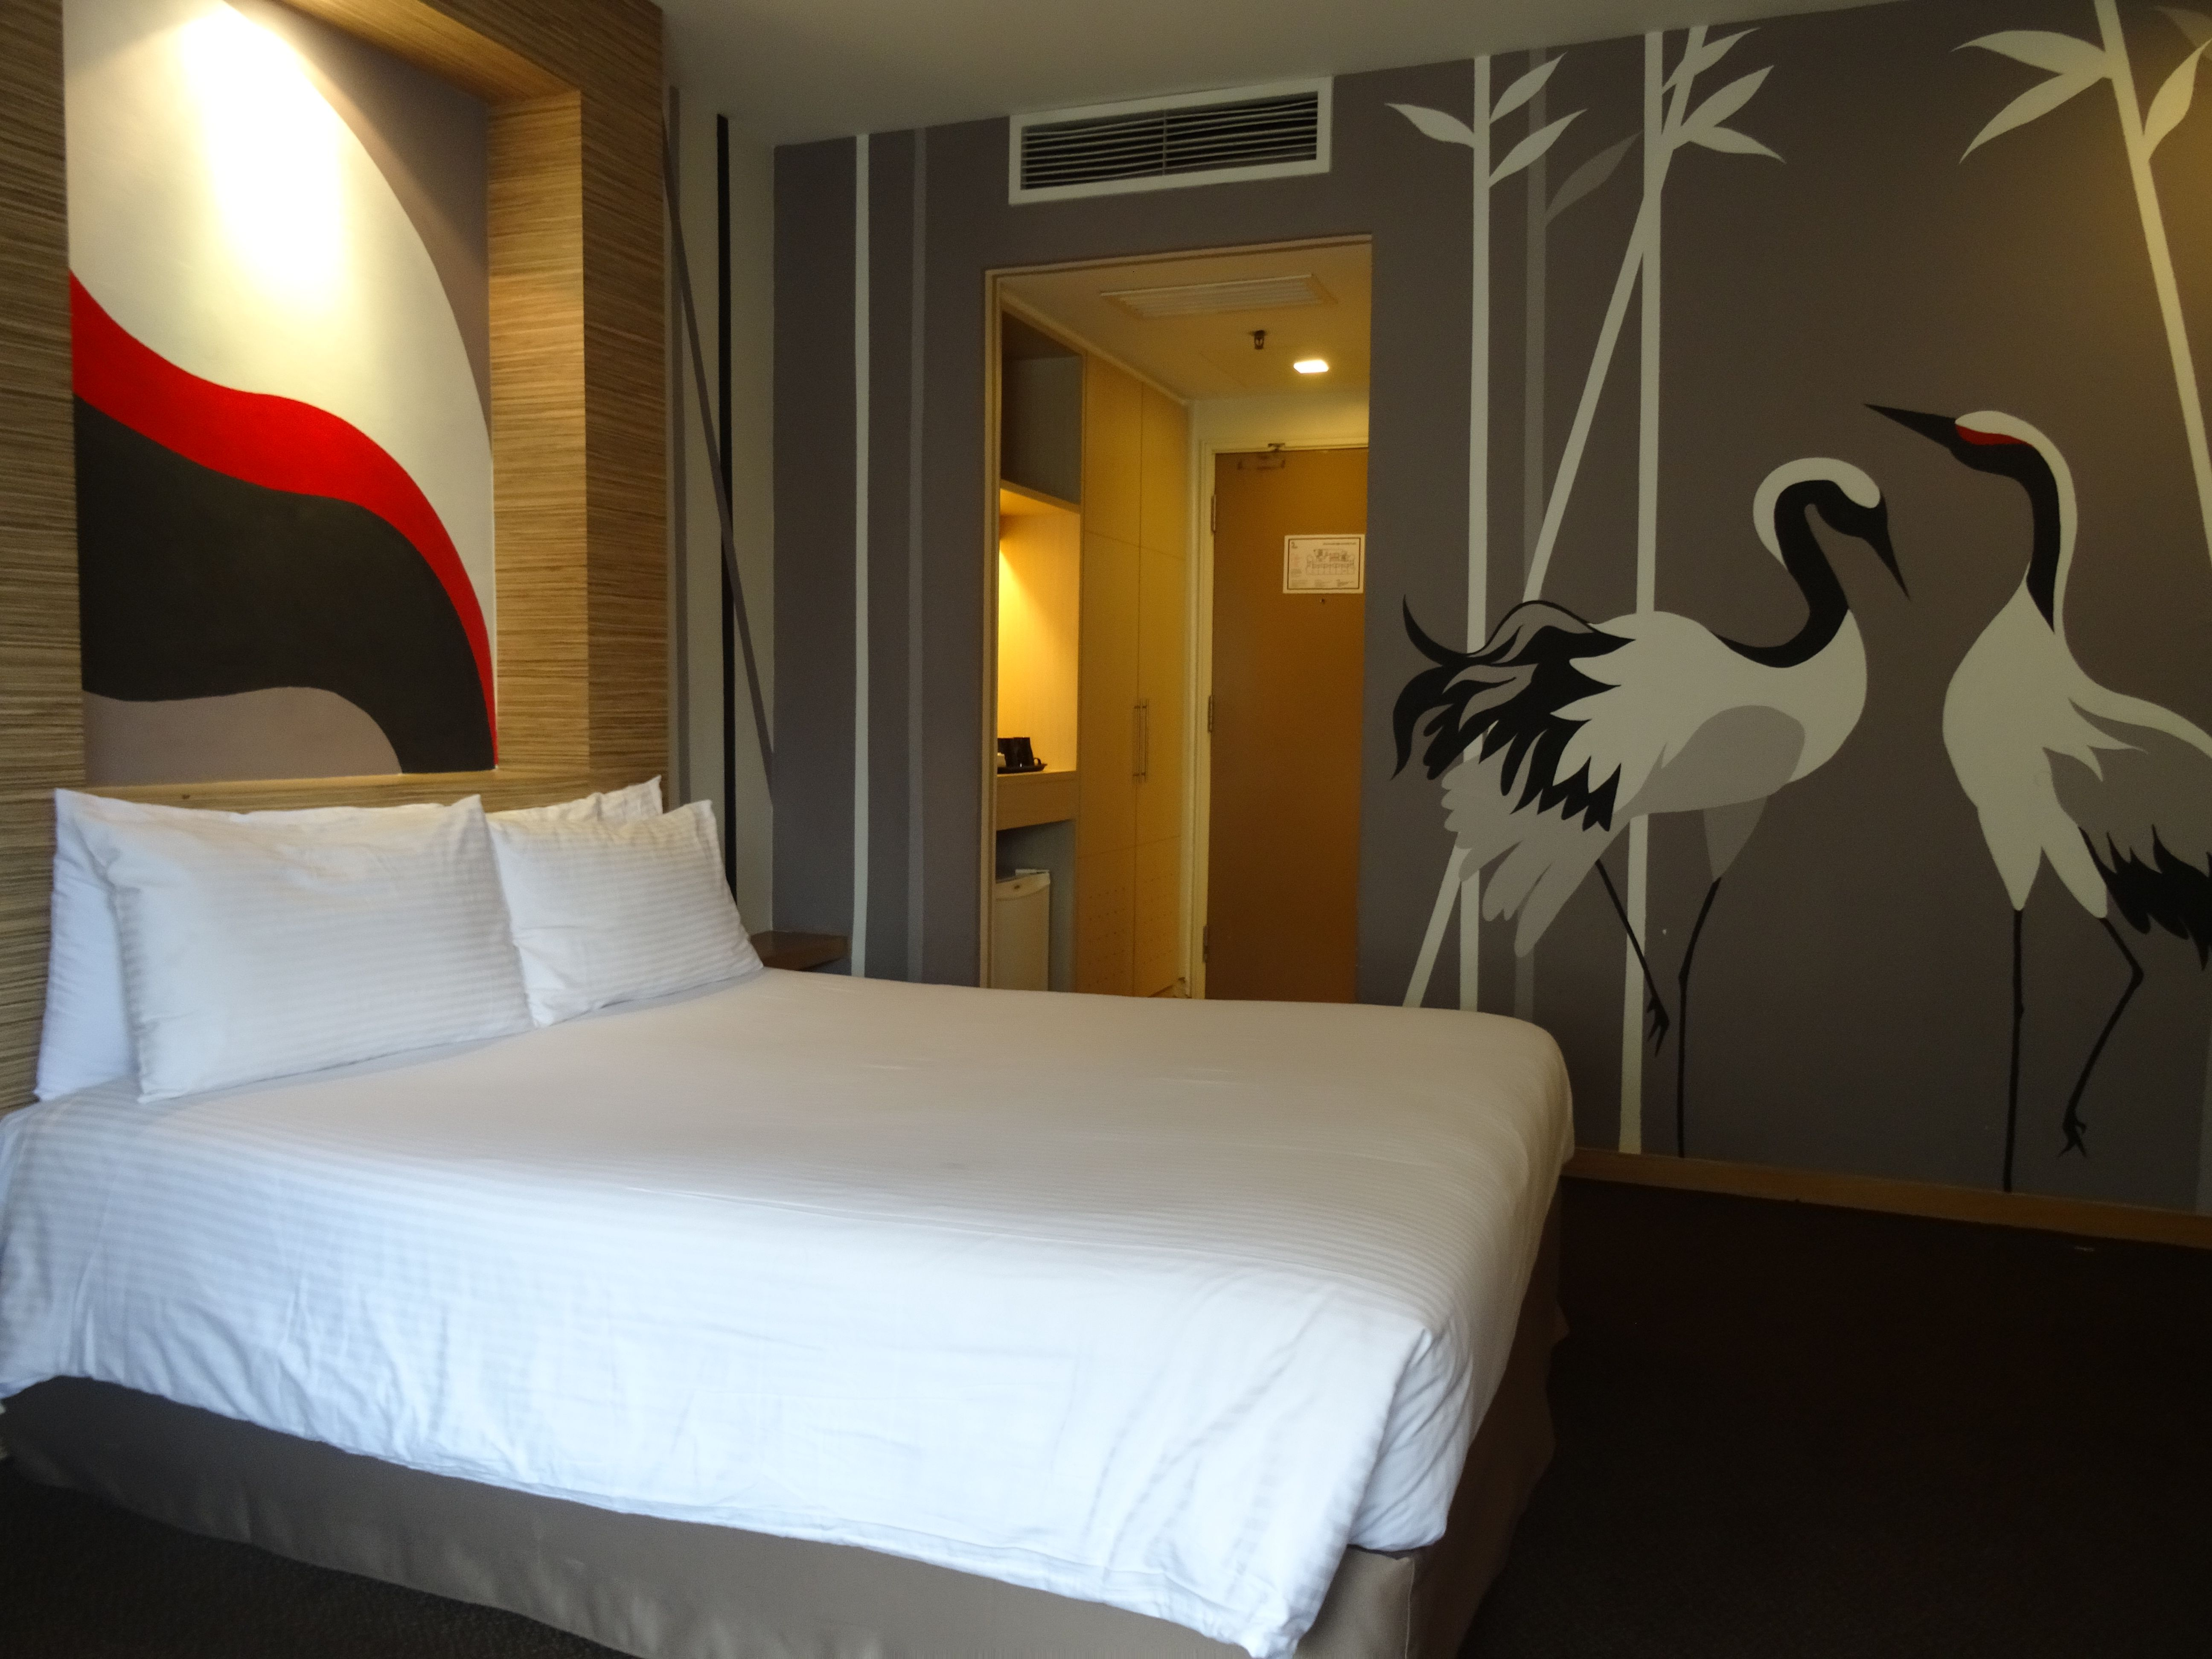 The Deluxe Theme Room at The 5 Elements Hotel in Chinatown